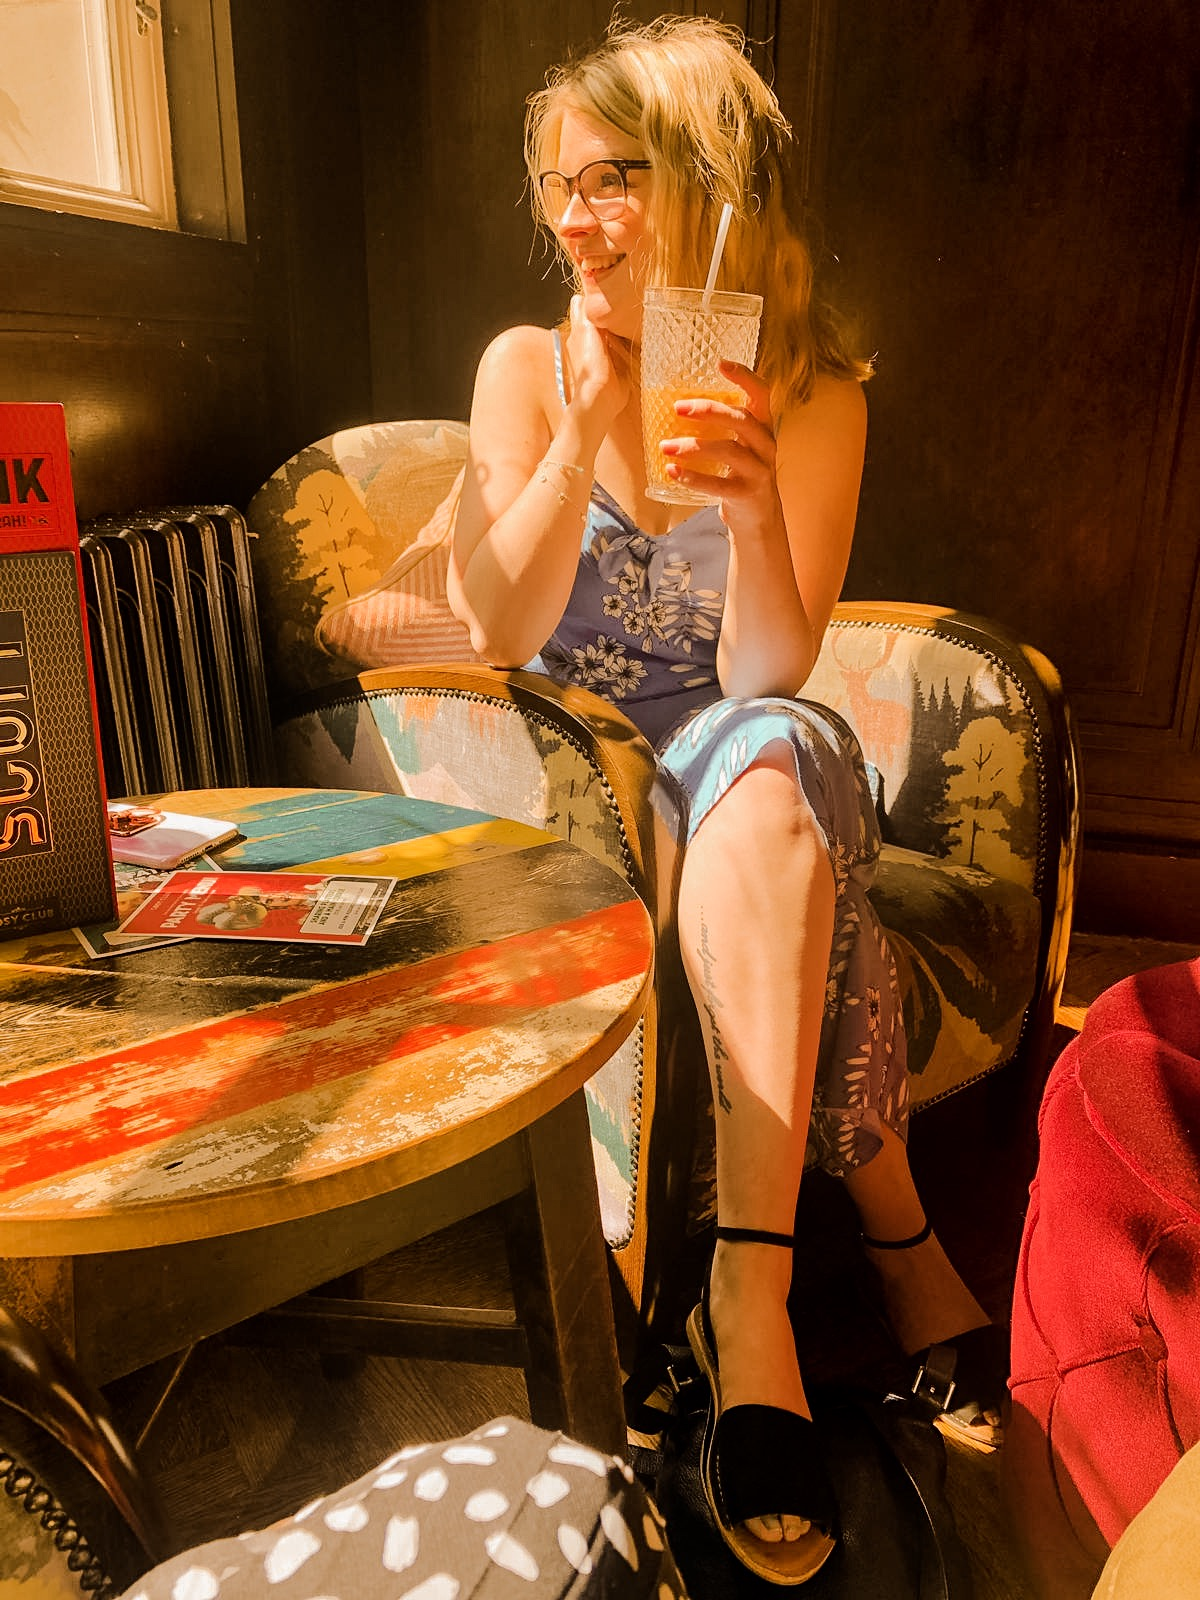 Girl in sunny window of coffee shop drinking iced latte - poetry blog post